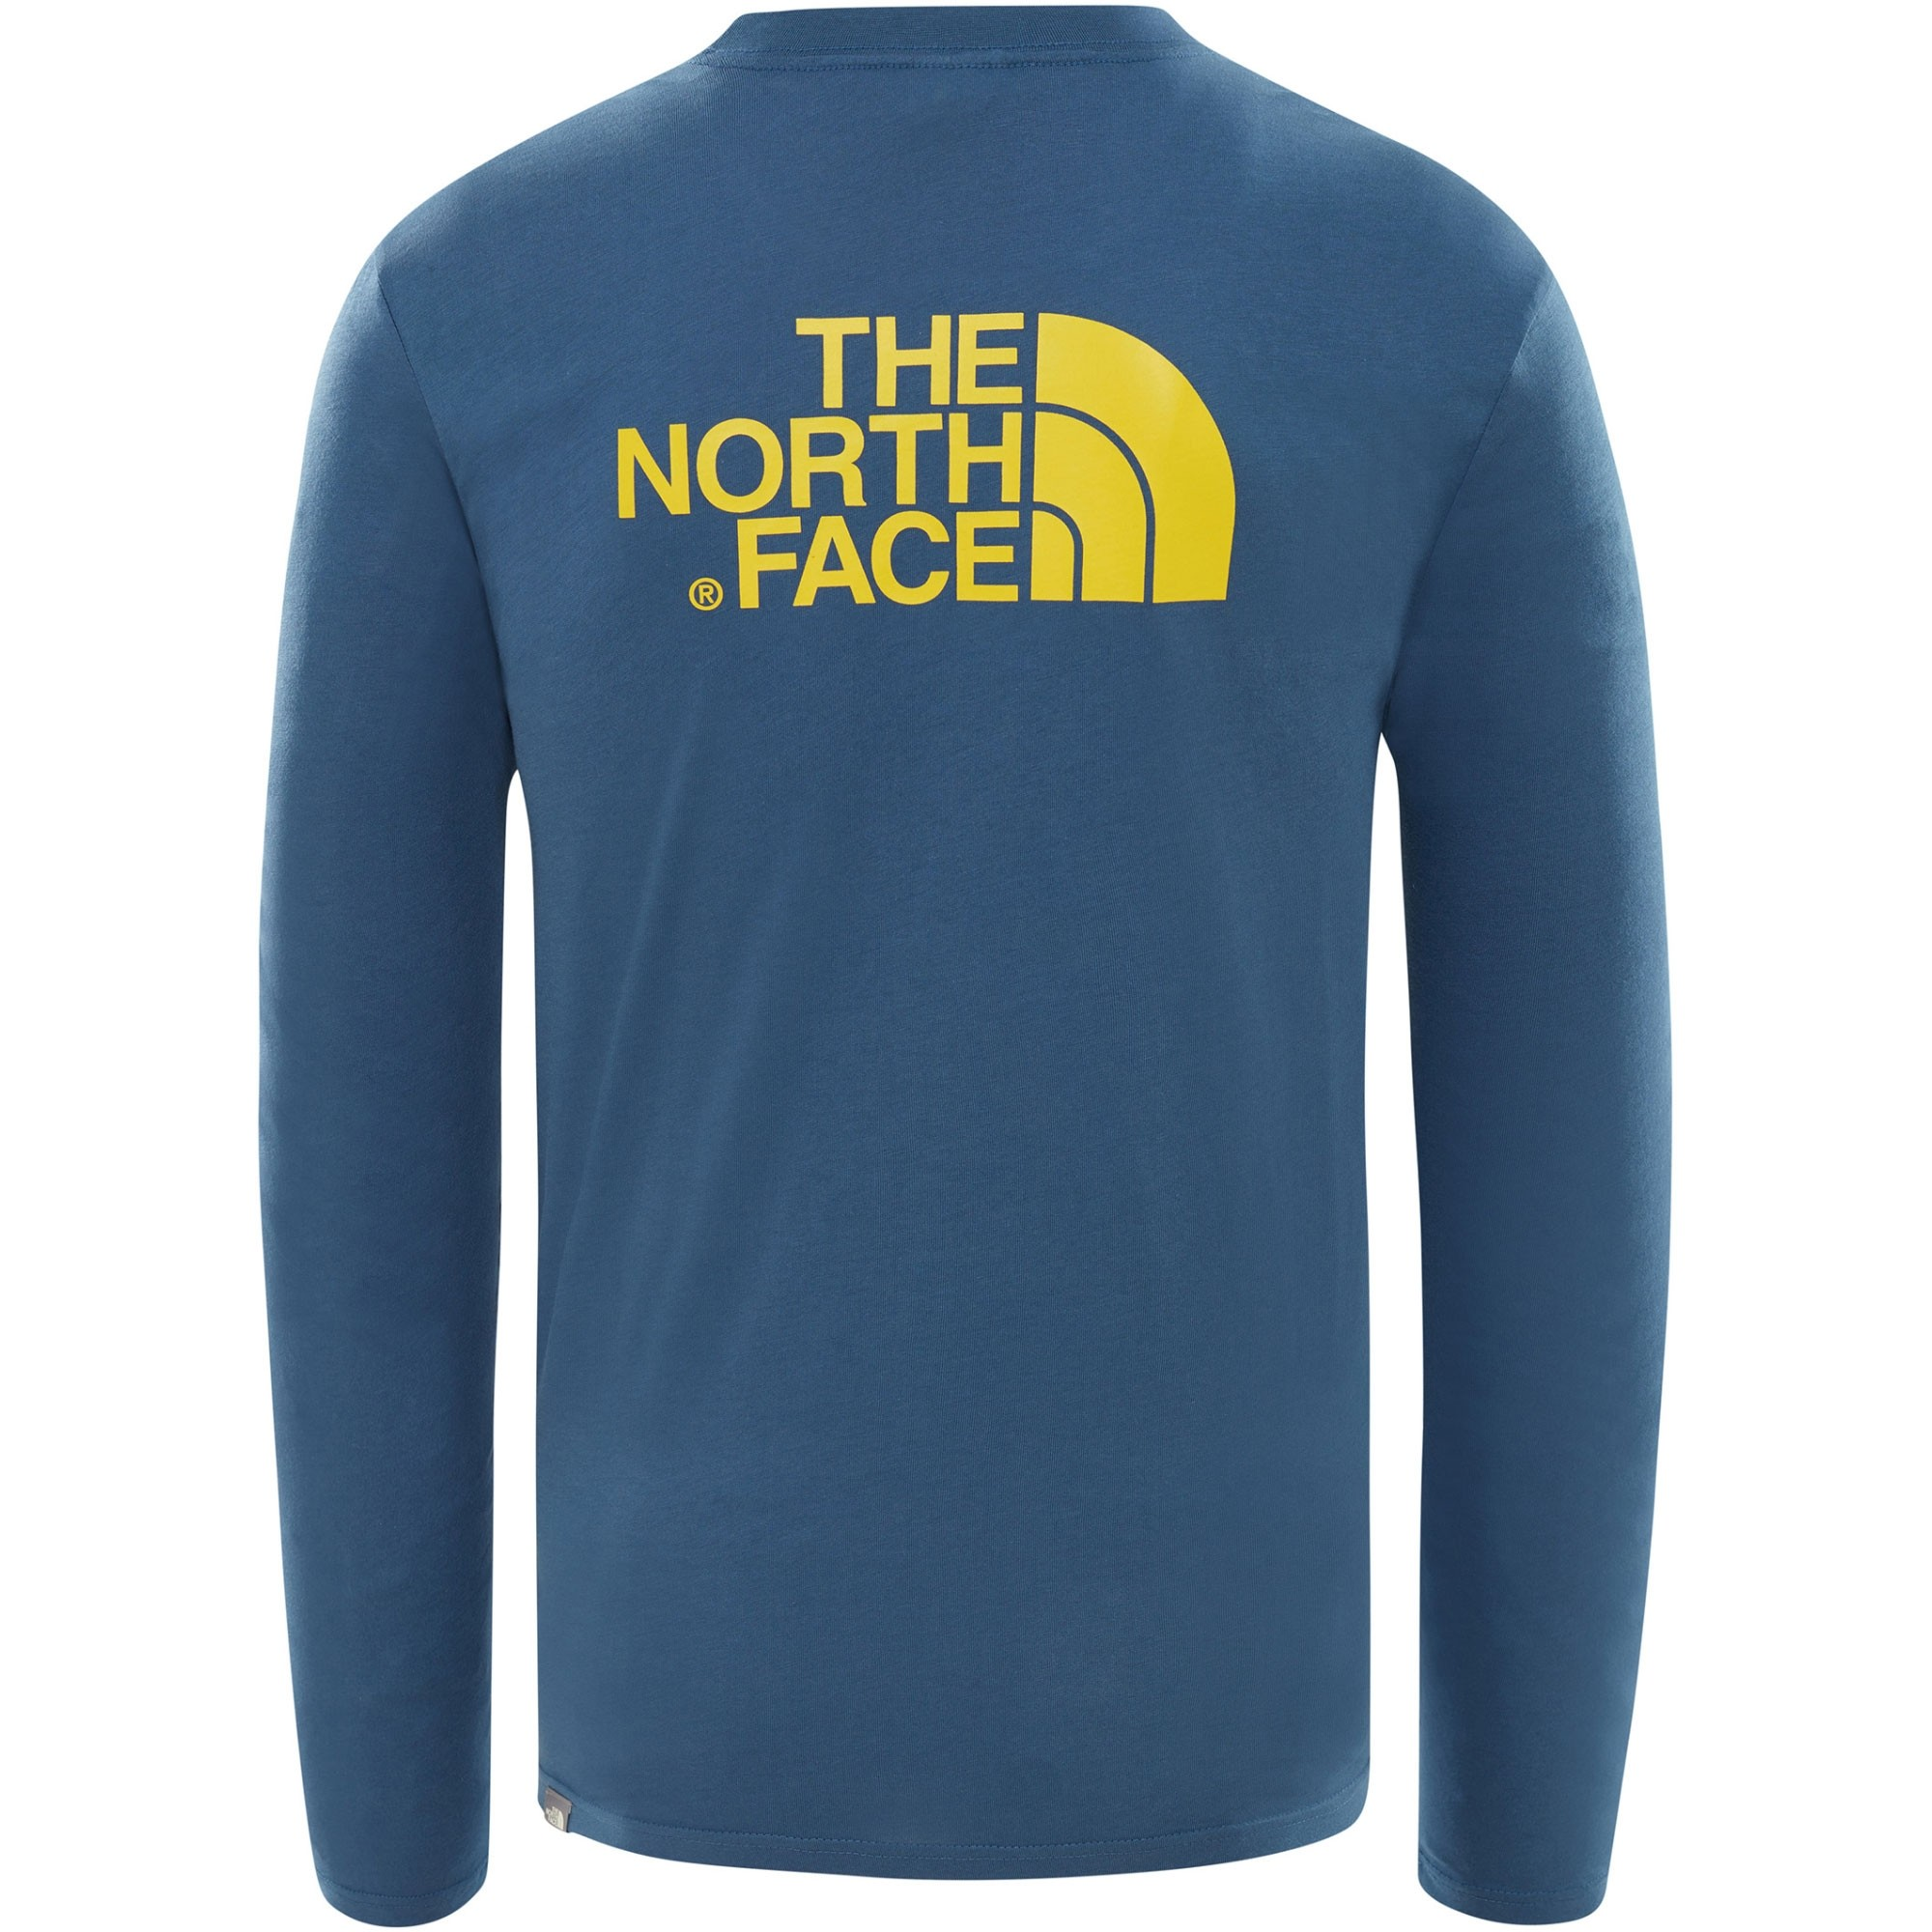 The North Face Long Sleeve Easy Tee - Shady Blue/Leopard Yellow